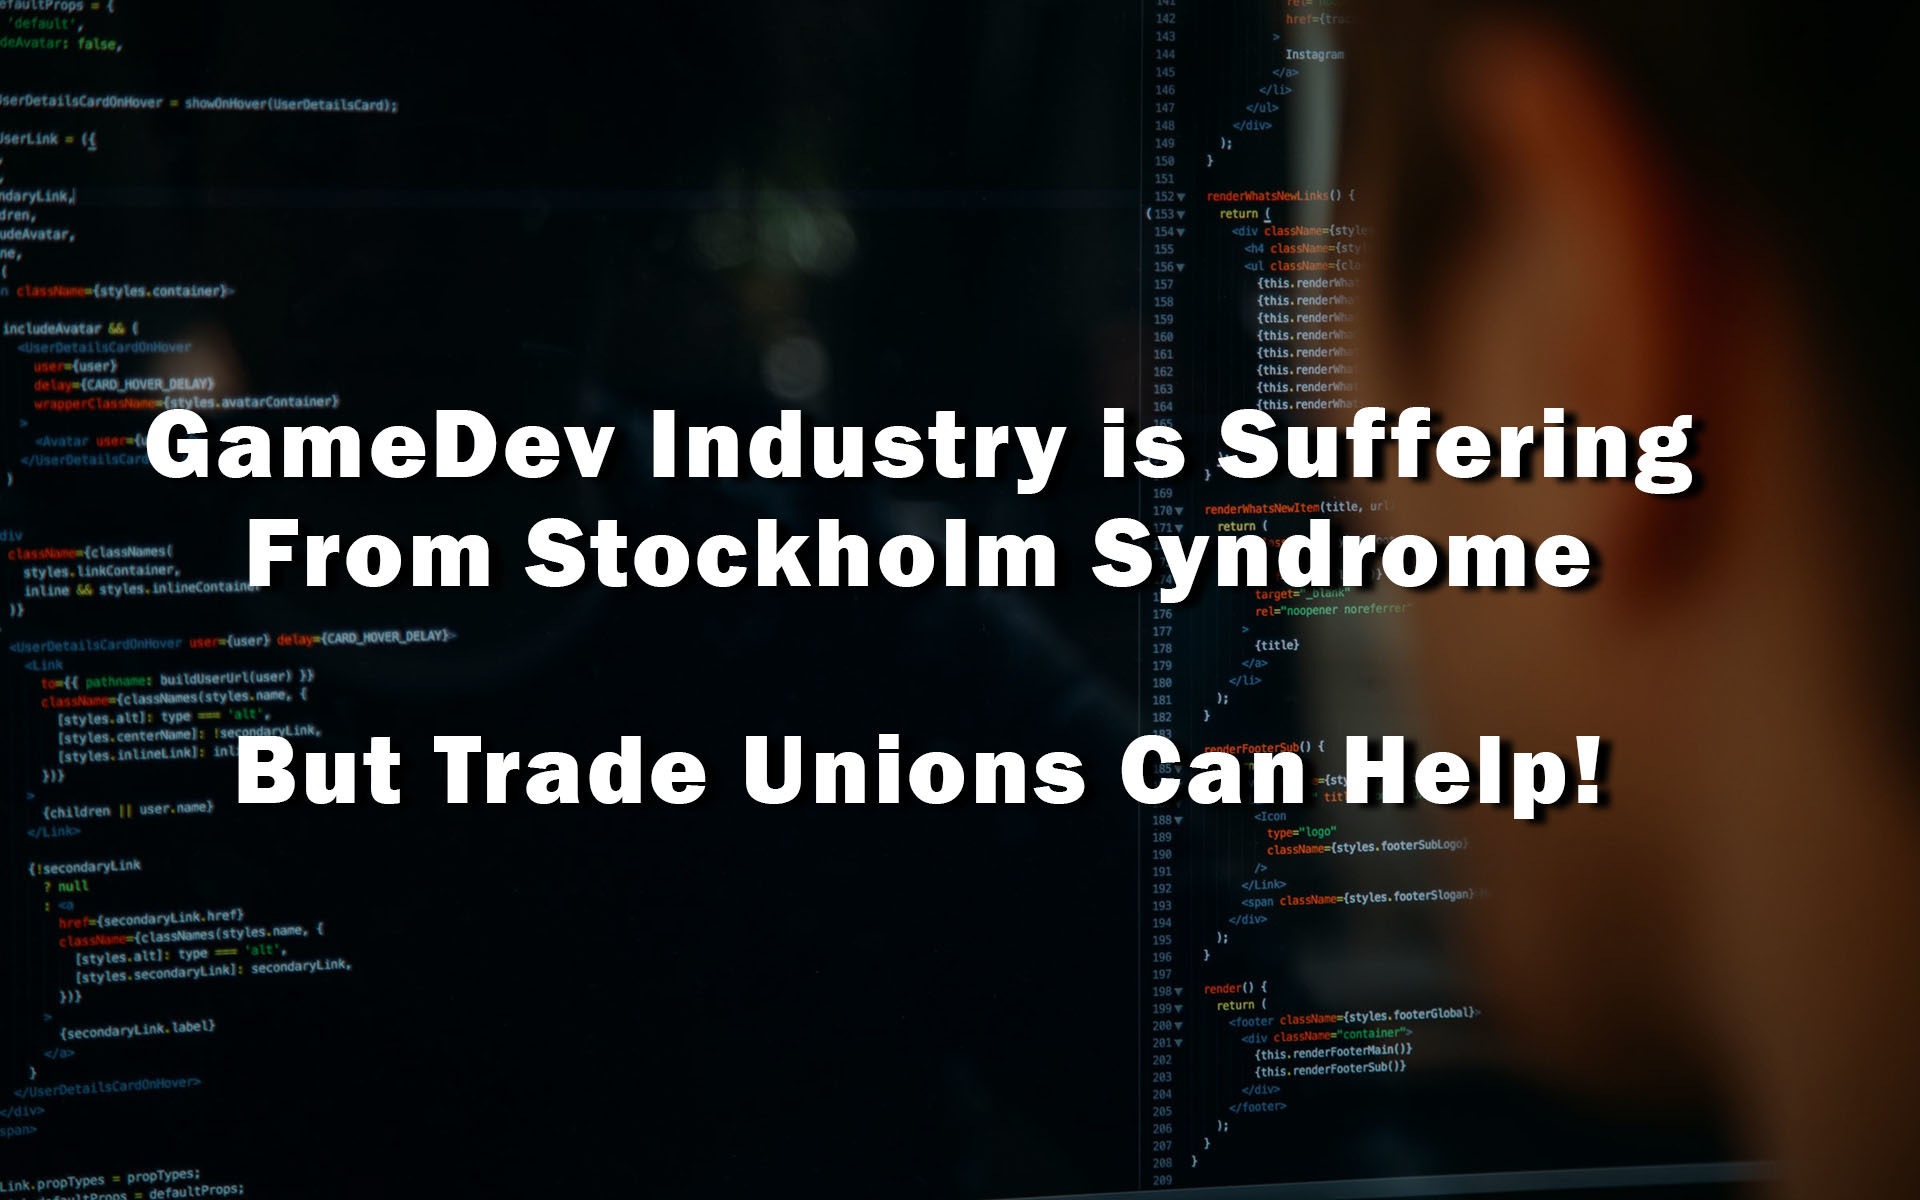 GameDev Industry is Suffering From Stockholm Syndrome - But Trade Unions Can Help!